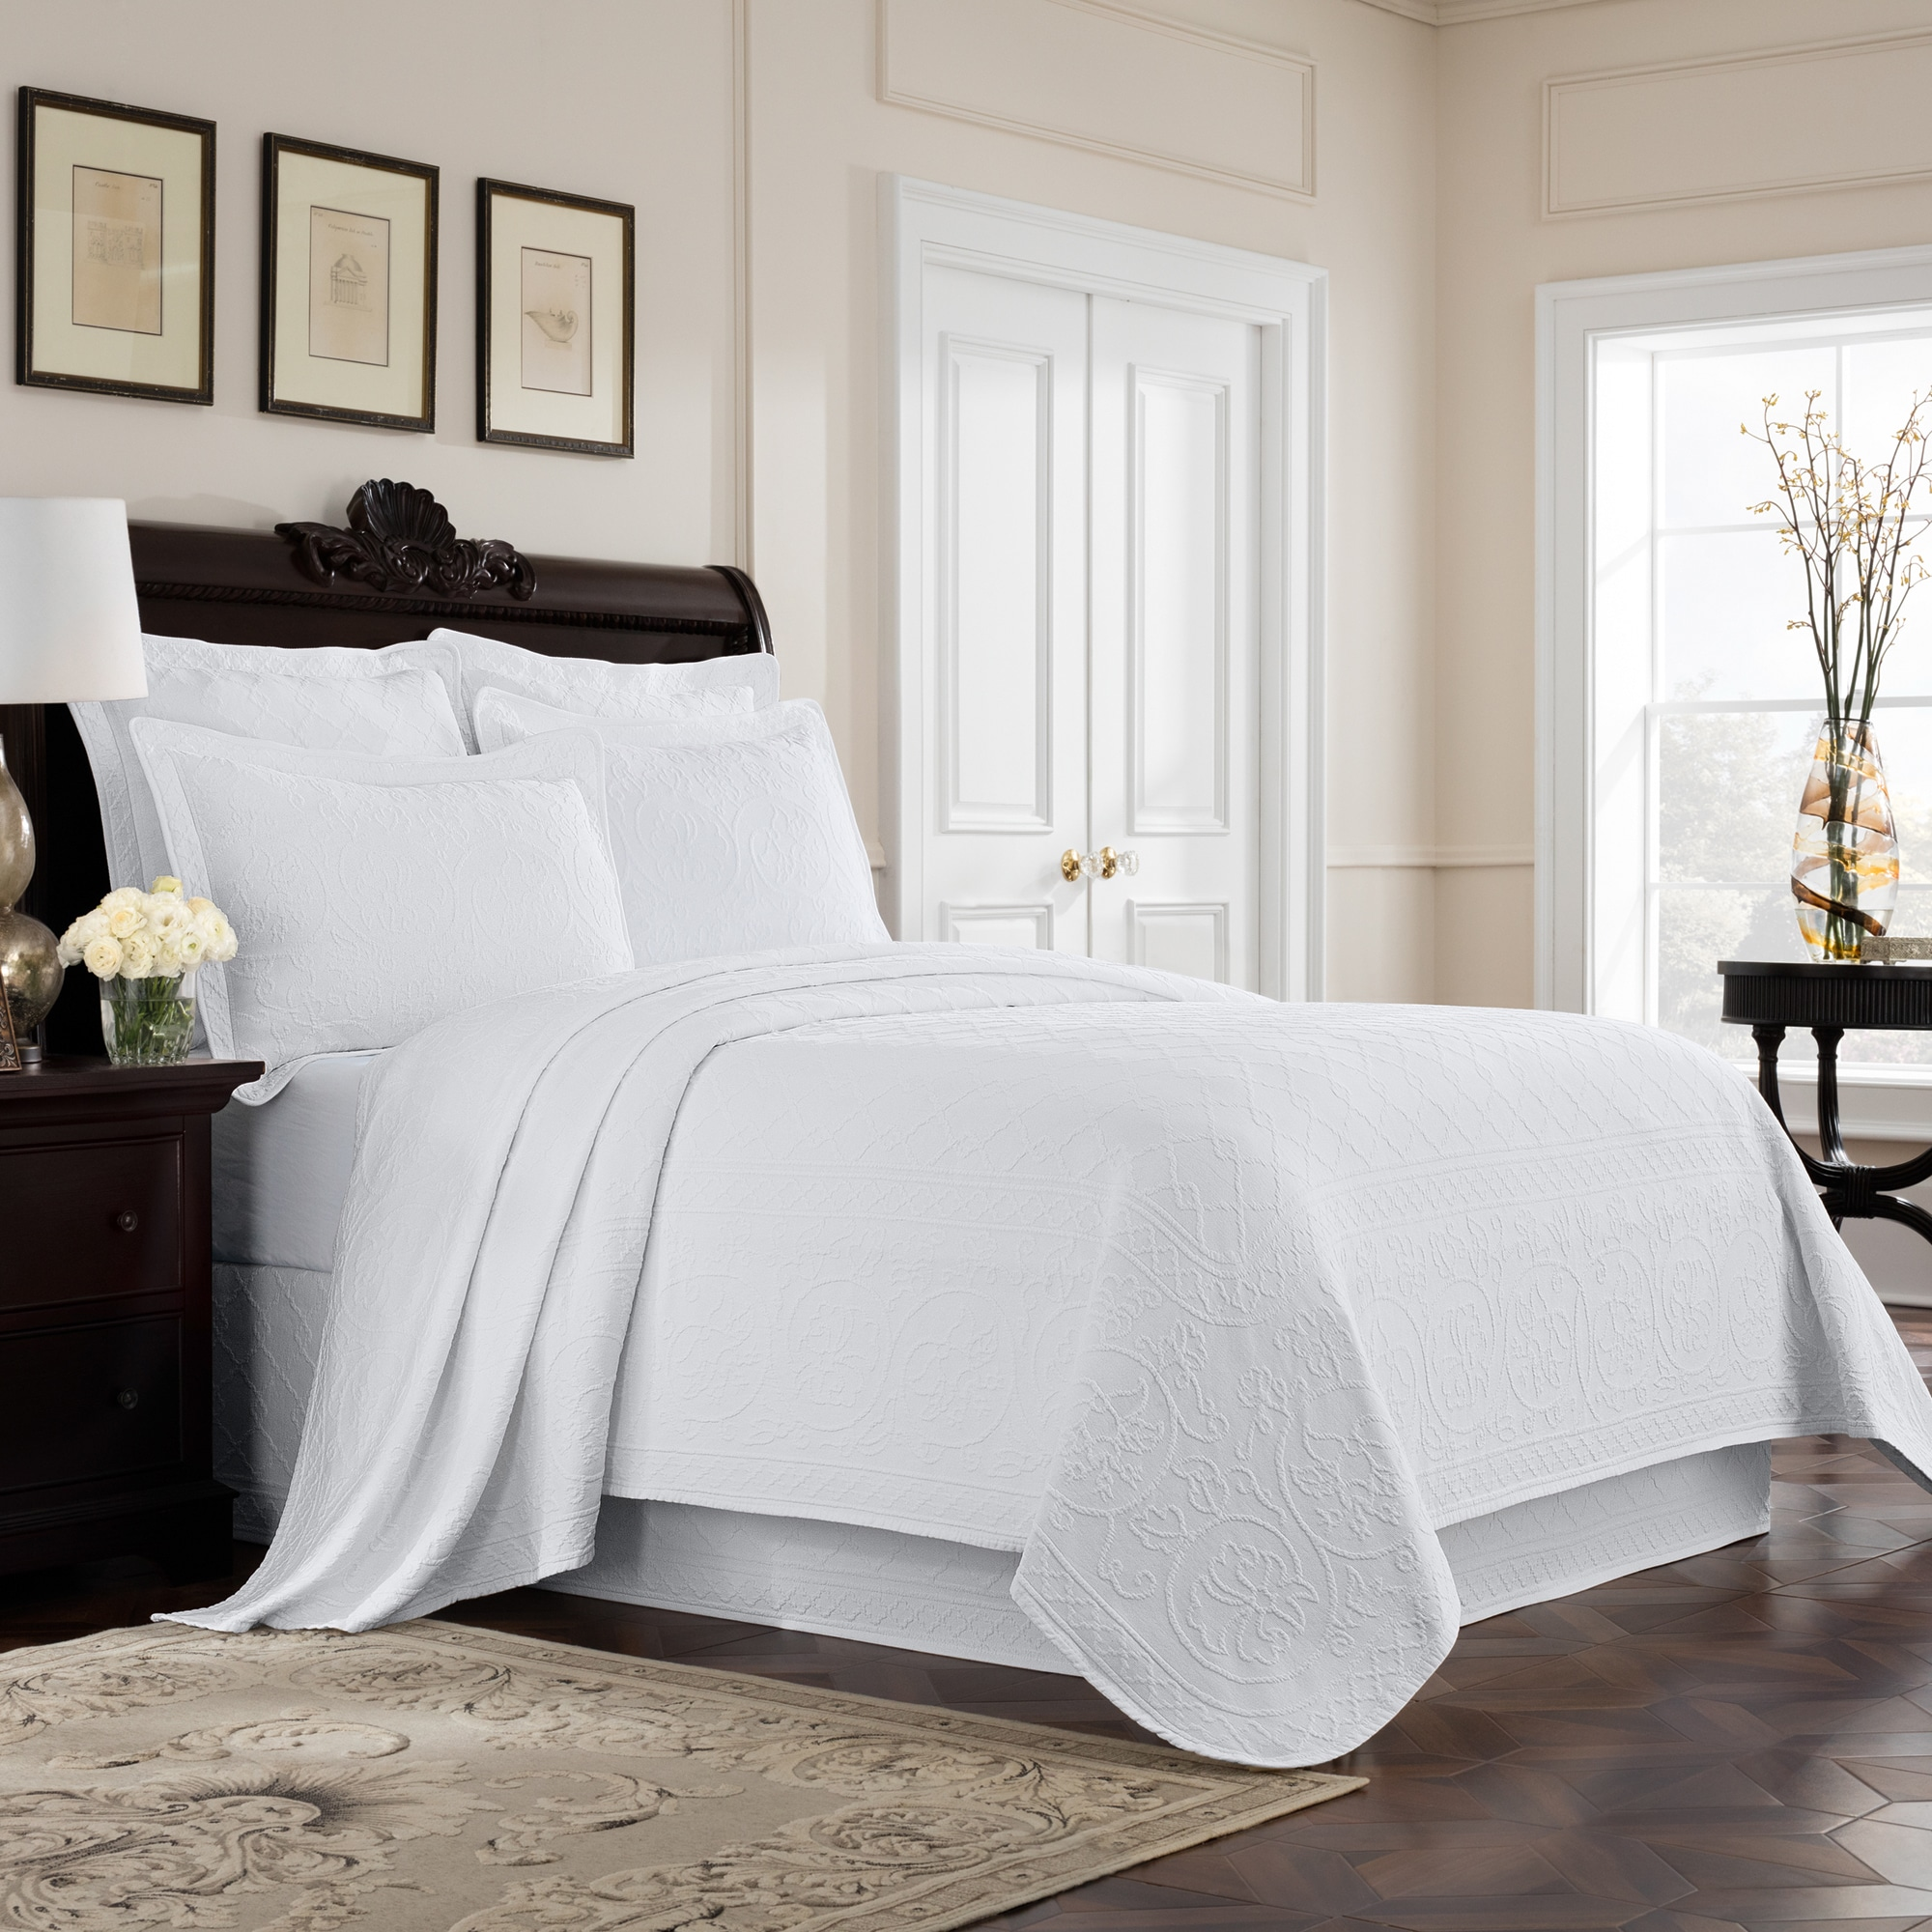 Royal Heritage Williamsburg Richmond Cotton Bedskirt